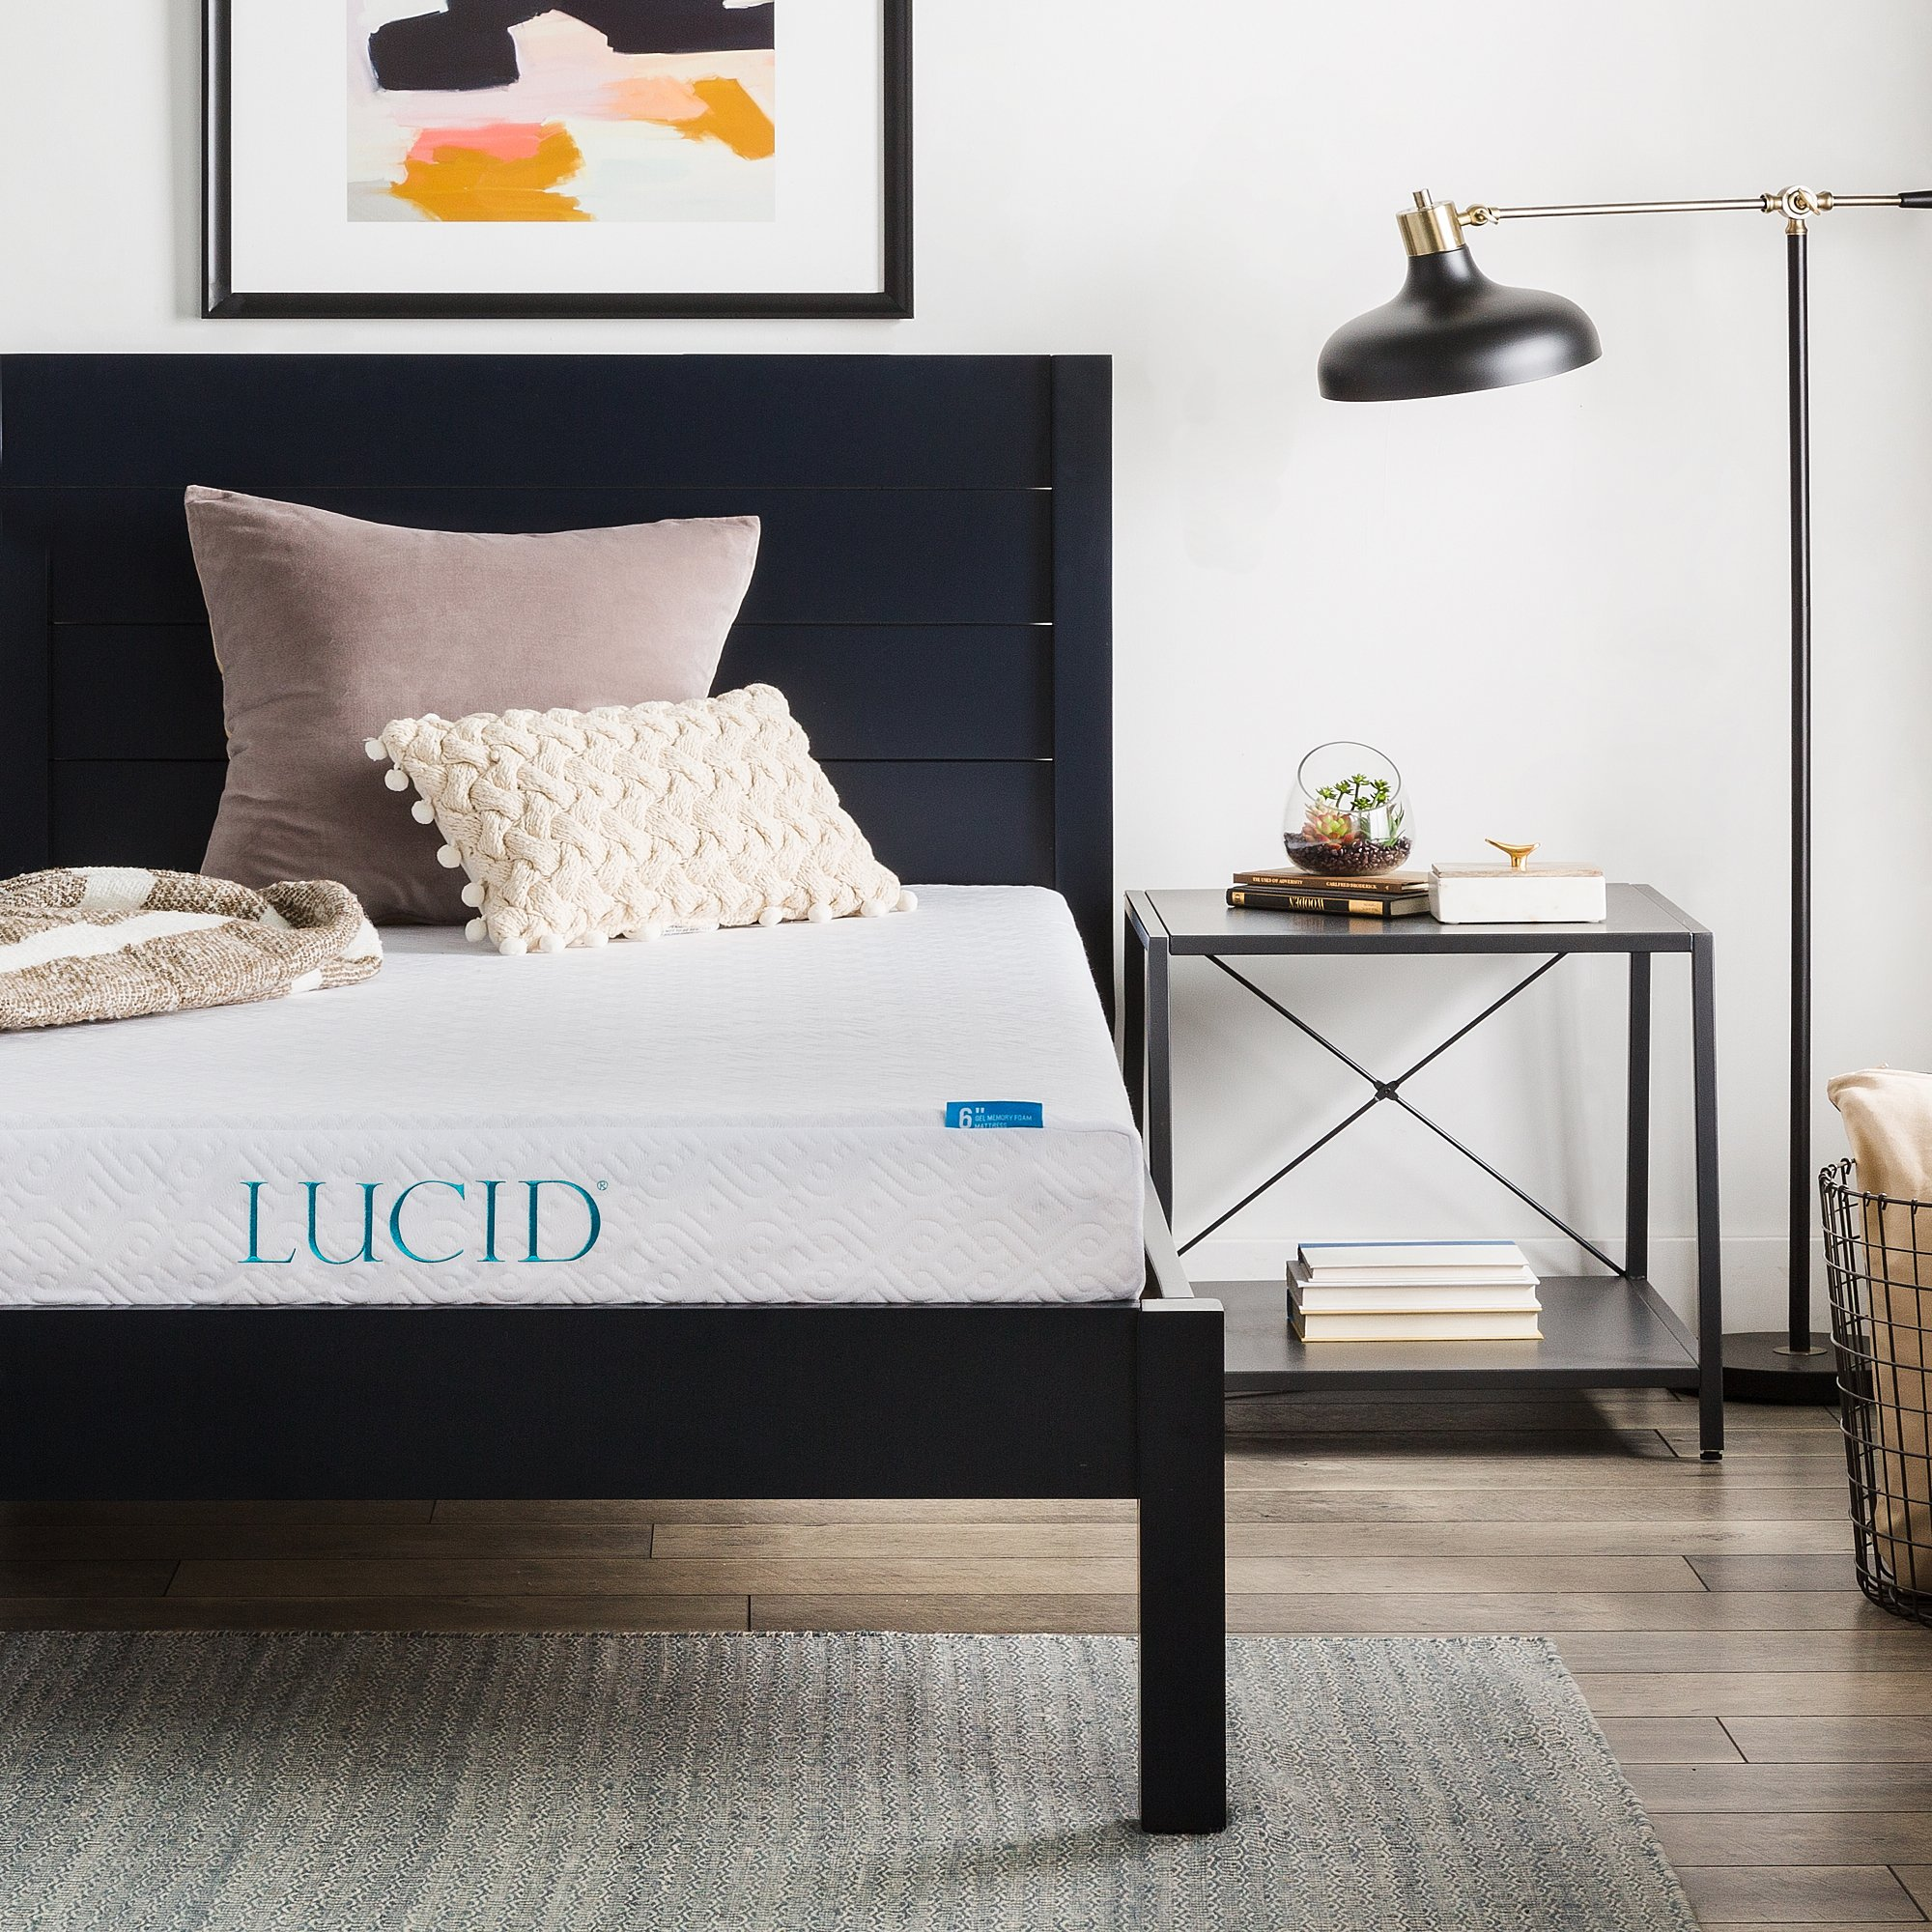 LUCID 6 Inch Memory Foam Mattress - Dual-Layered - CertiPUR-US Certified - Firm Feel - Queen Size